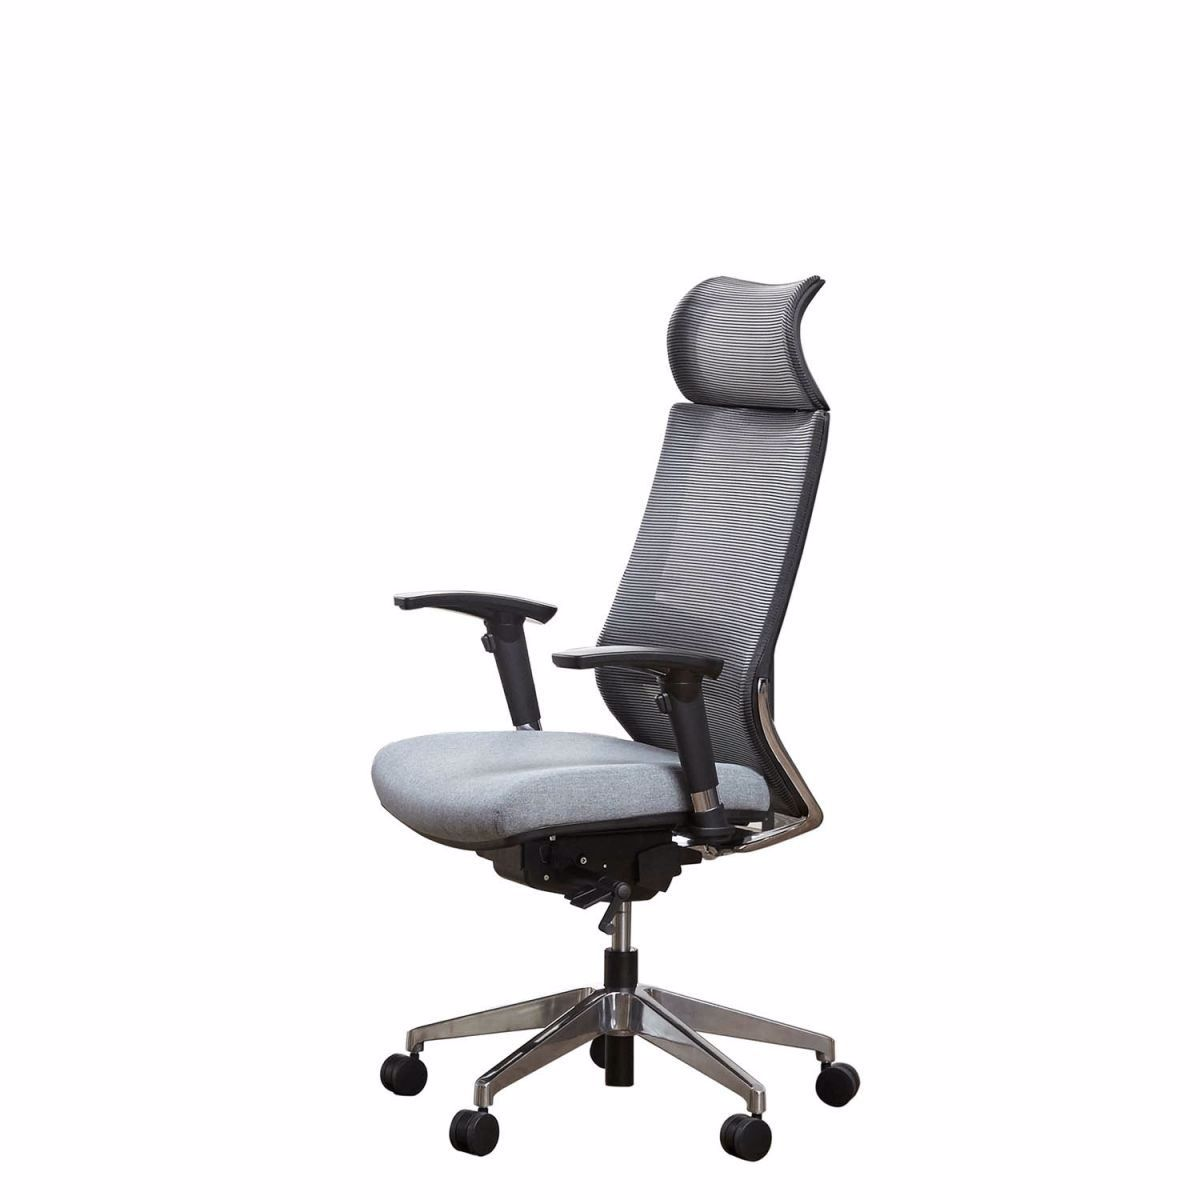 Pleasing Ceo High Back Desk Chair Gmtry Best Dining Table And Chair Ideas Images Gmtryco